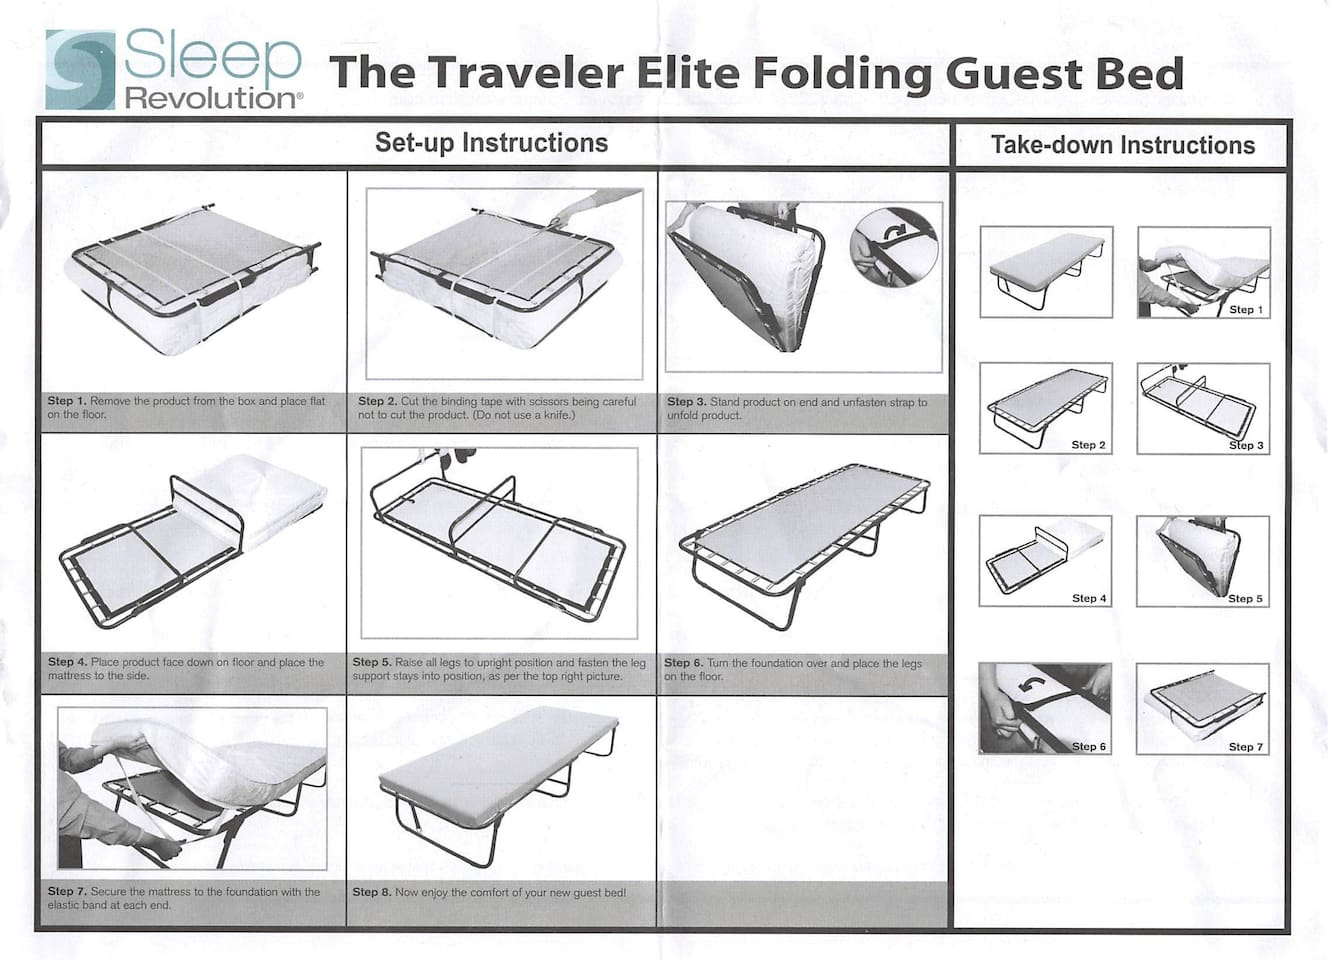 Folding bed can be reserved for special occasions.